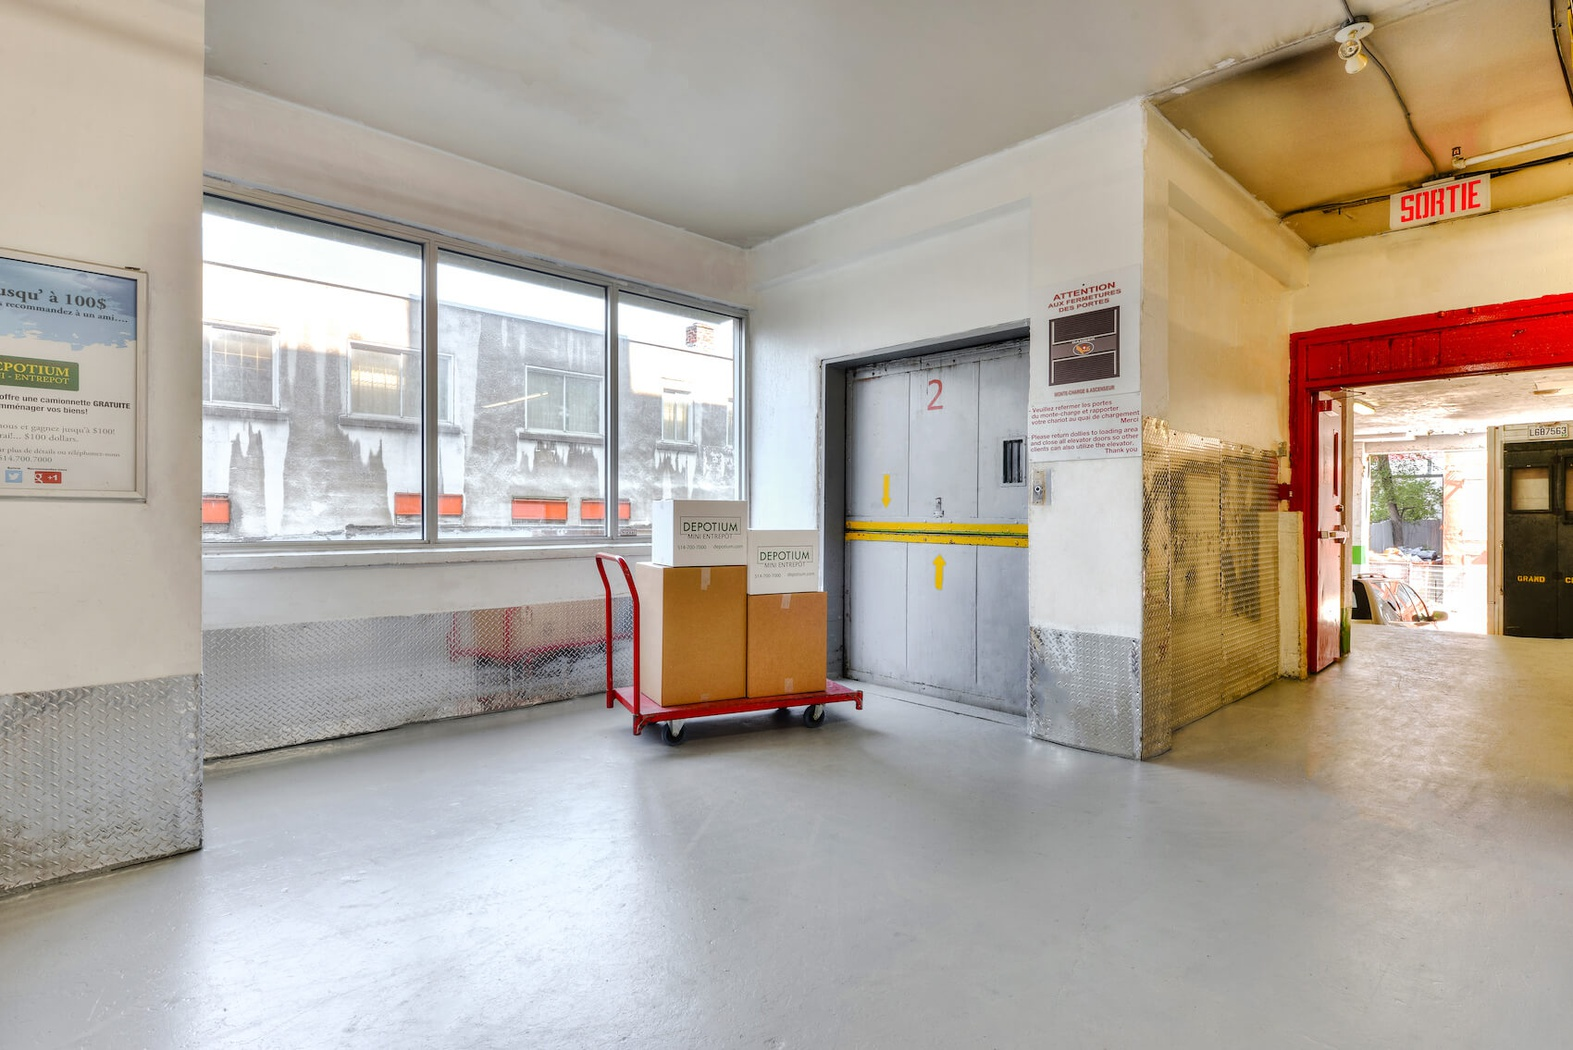 Rent Montreal storage units at 3555 Boulevard Crémazie Est. We offer a wide-range of affordable self storage units and your first 4 weeks are free!